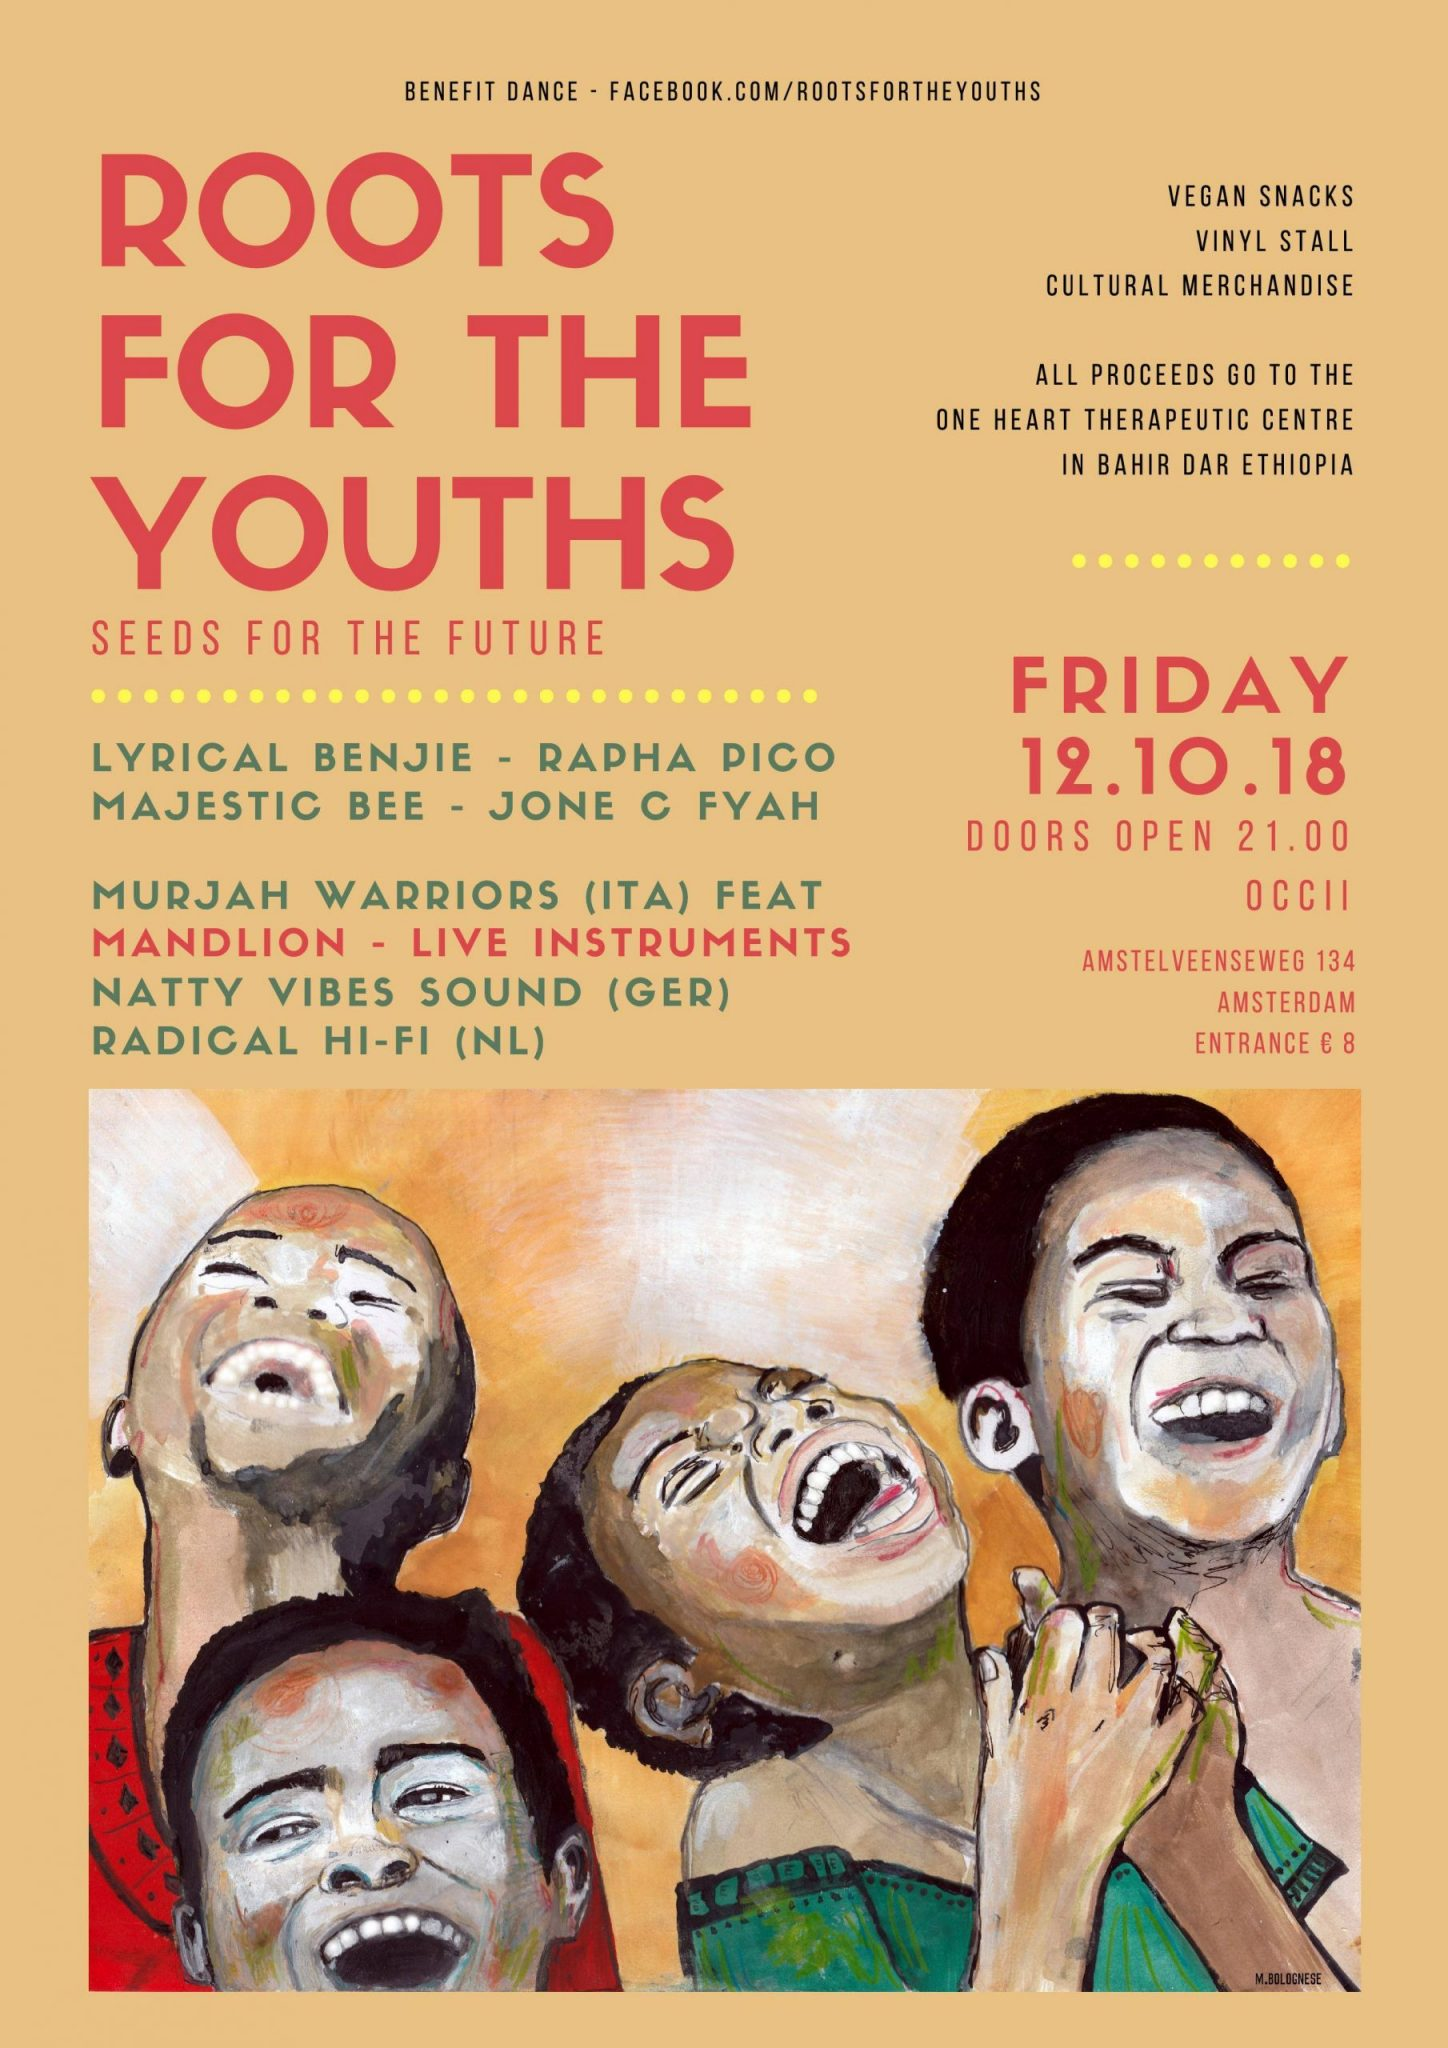 ROOTS FOR THE YOUTHS #5 w/ LYRICAL BENJIE + RAPHA PICO + JONE C FYAH + NATTY VIBES SOUND (DE) + MURJAH WARRIORS SOUND ART SYSTEM (IT) ft. MANDLION + RADICAL Hi-Fi